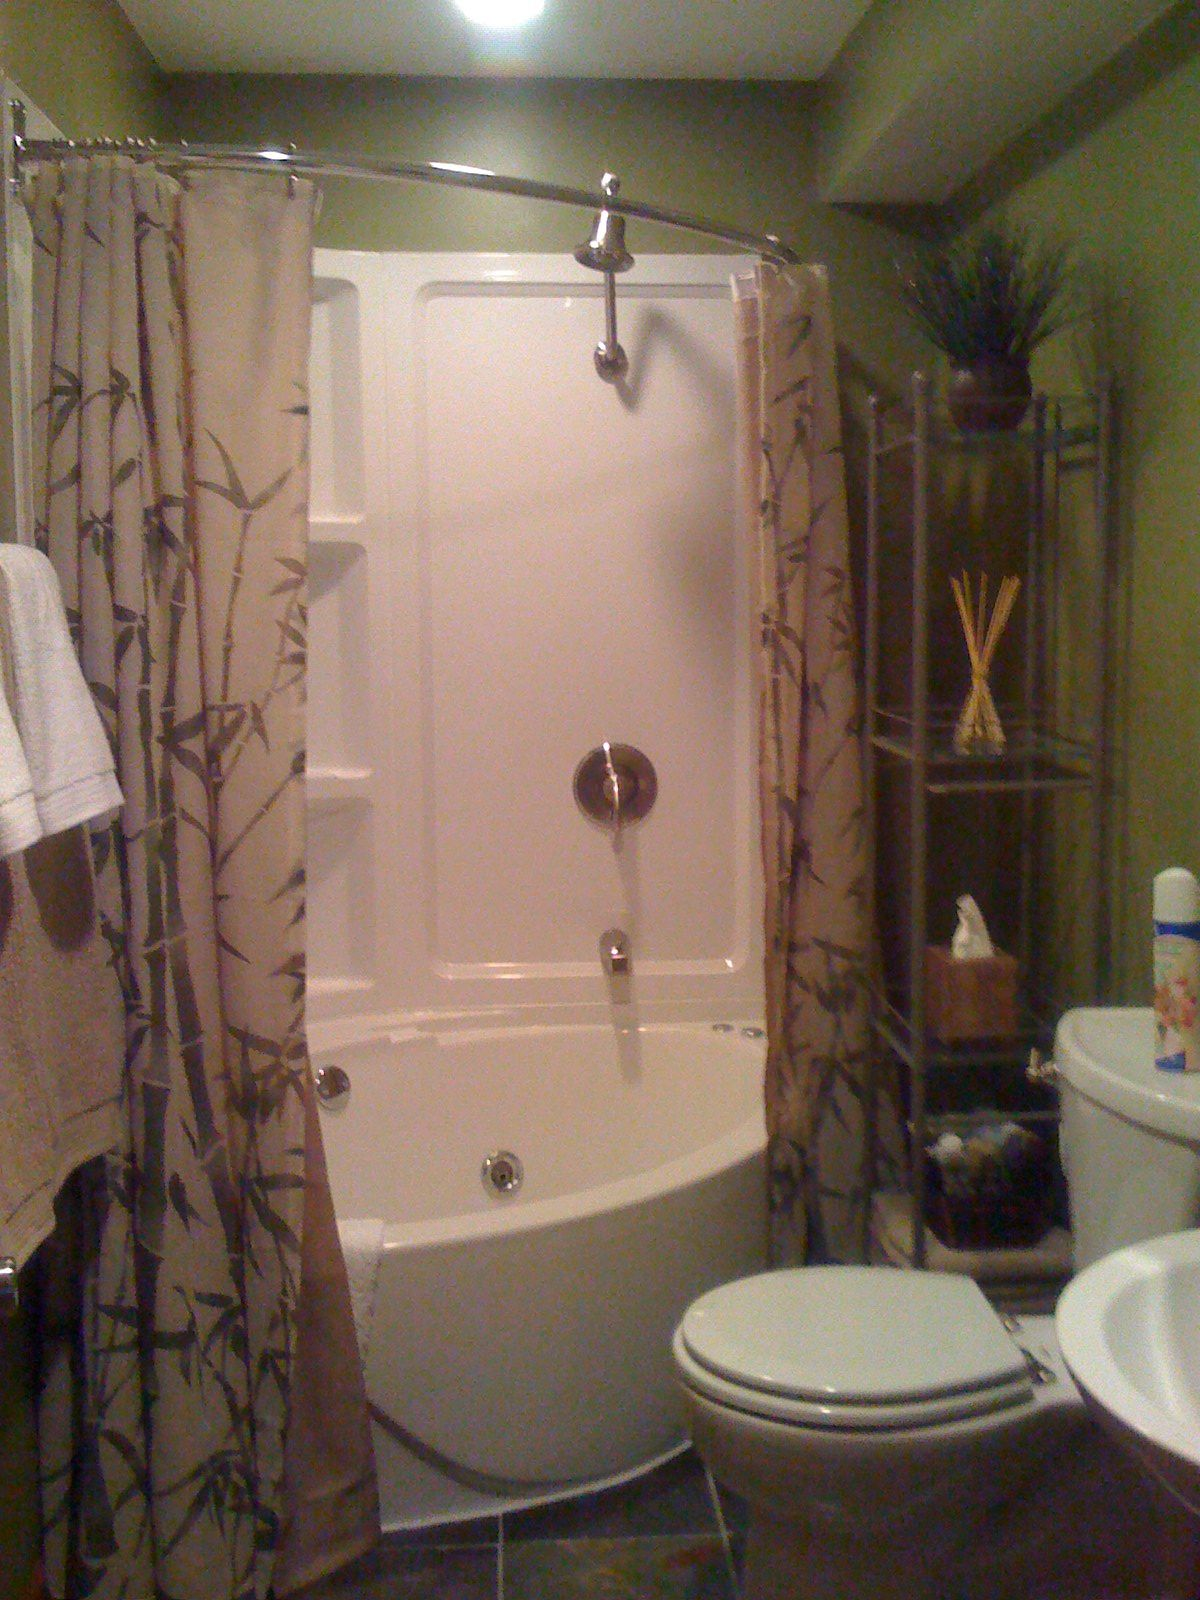 How It Might Look In A Small Bathroom I Would Think Light Bright - Bathtub Shower Combo For Small Spaces